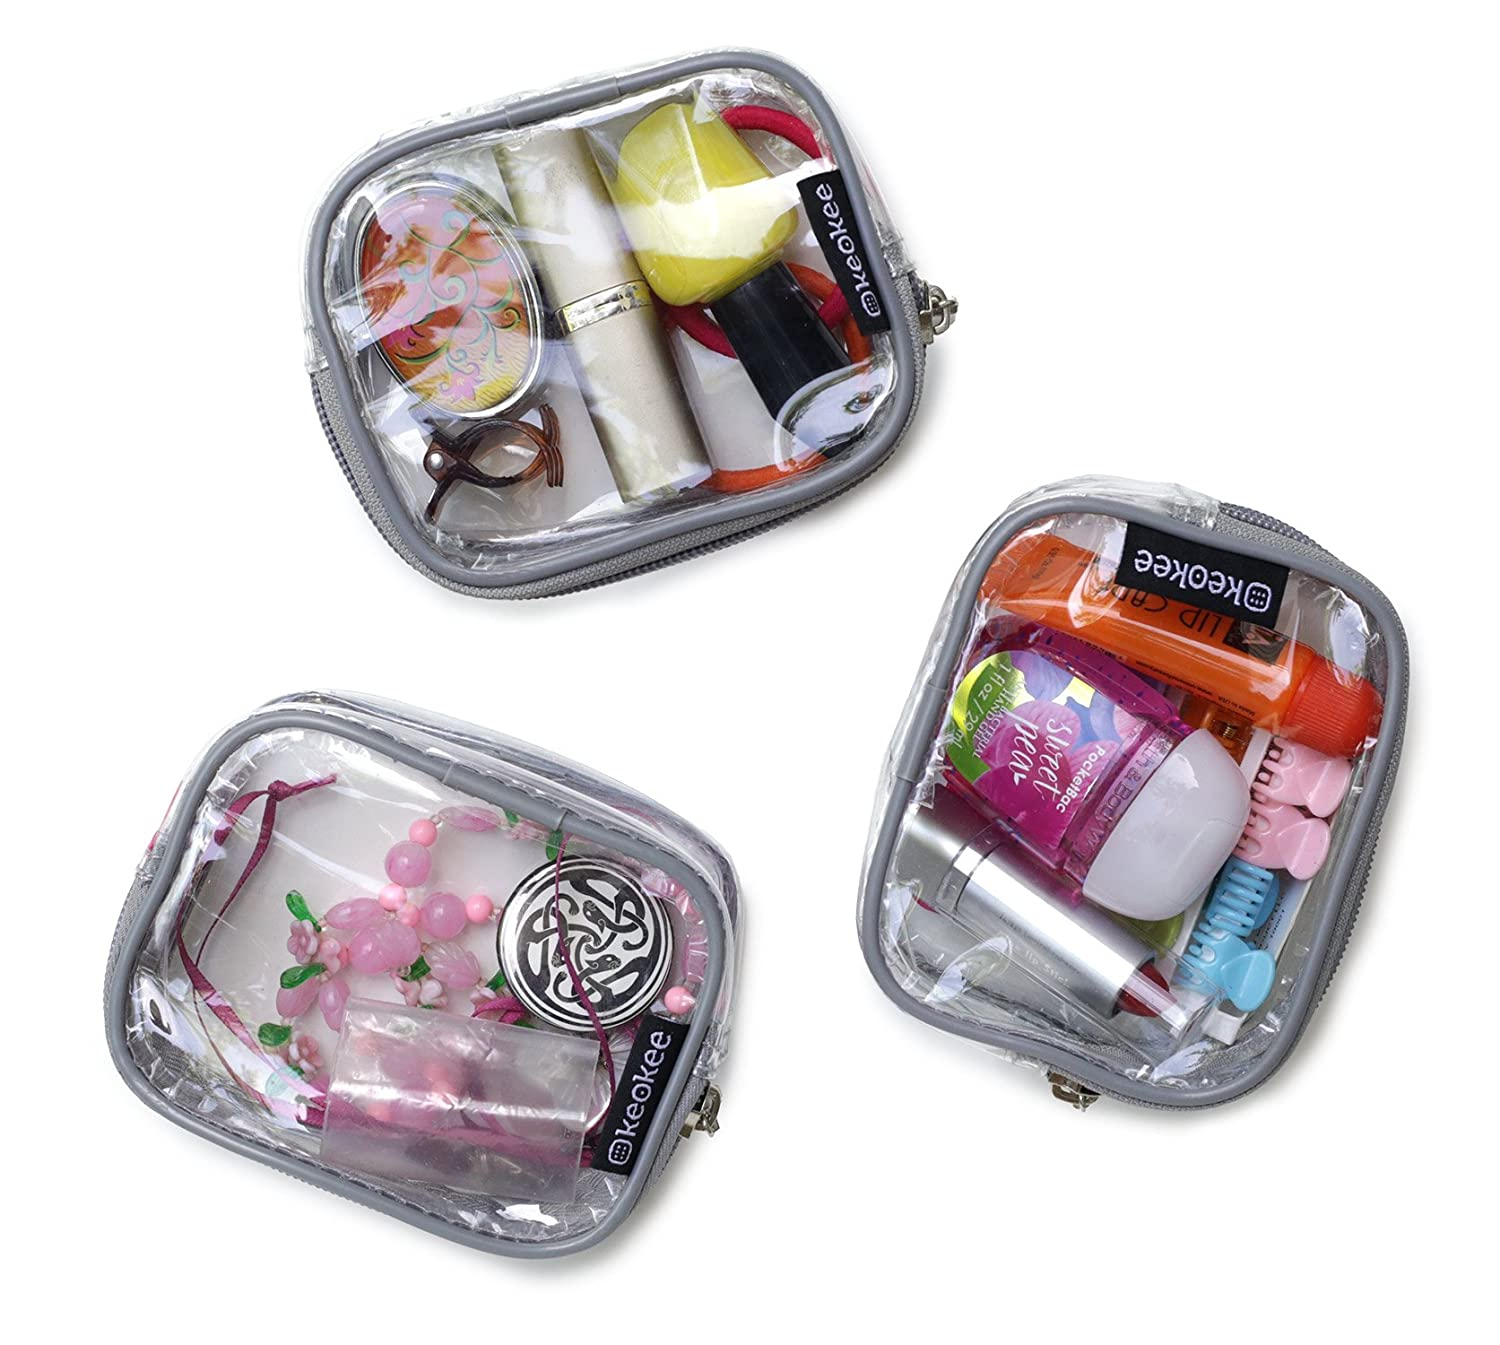 Keokee Small Clear Cosmetic Cases or Multipurpose Bags   Organizer and Travel Packing Pouches   Set of 3